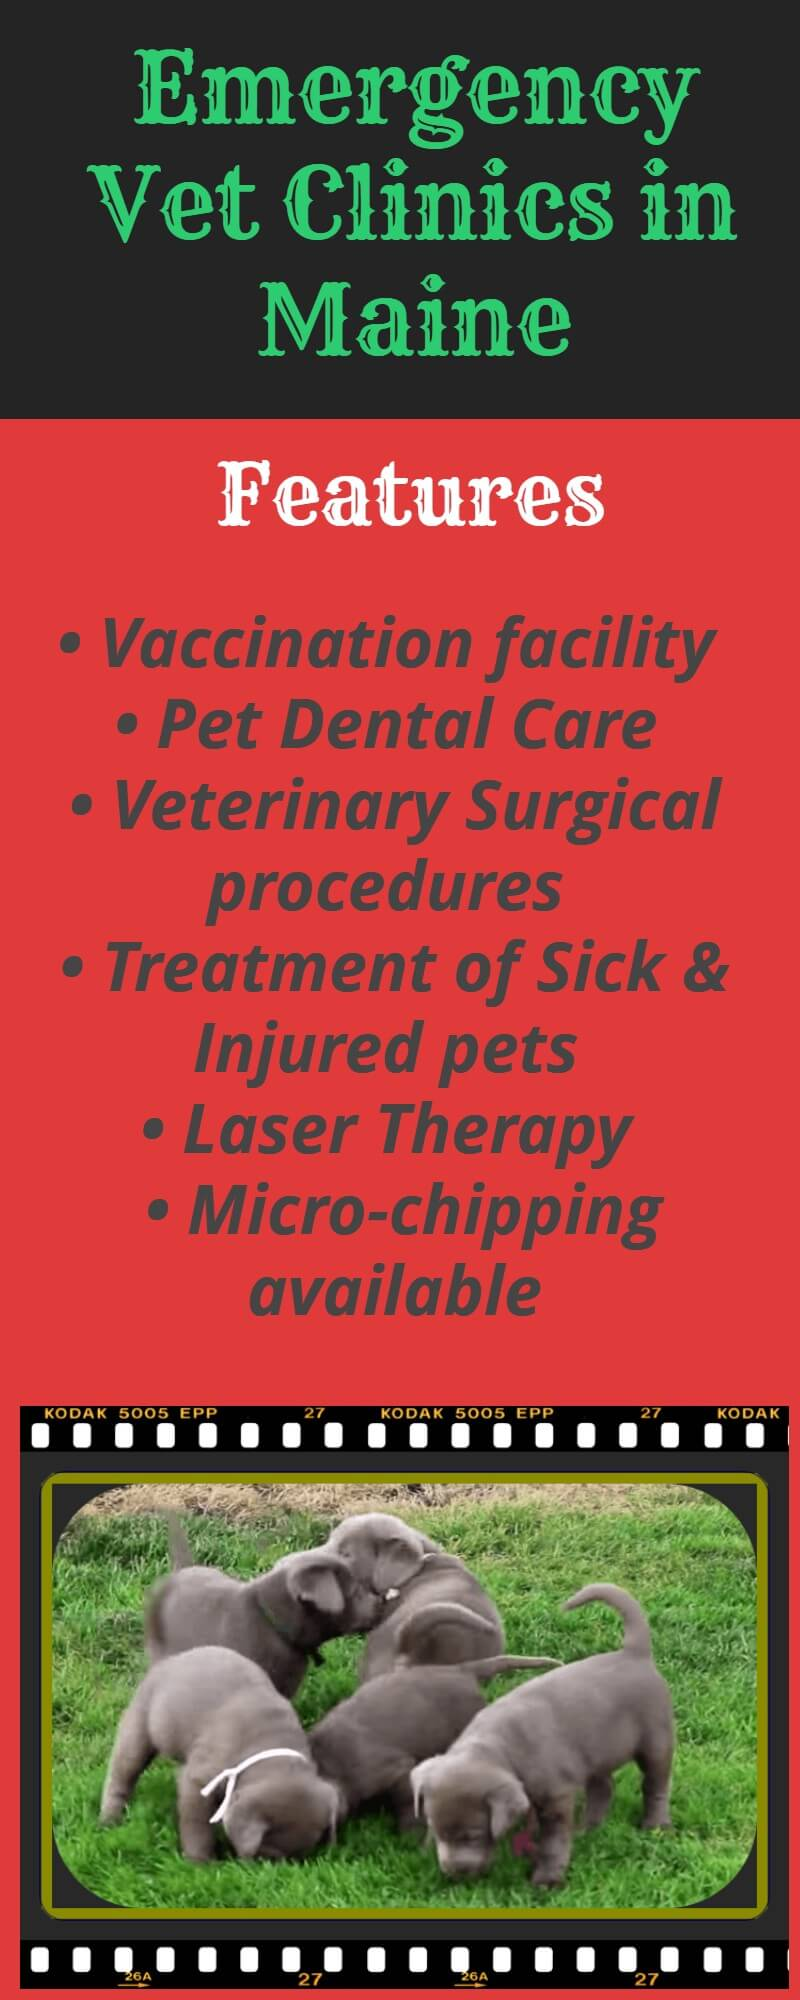 Emergency Vet Clinics in Maine, USA